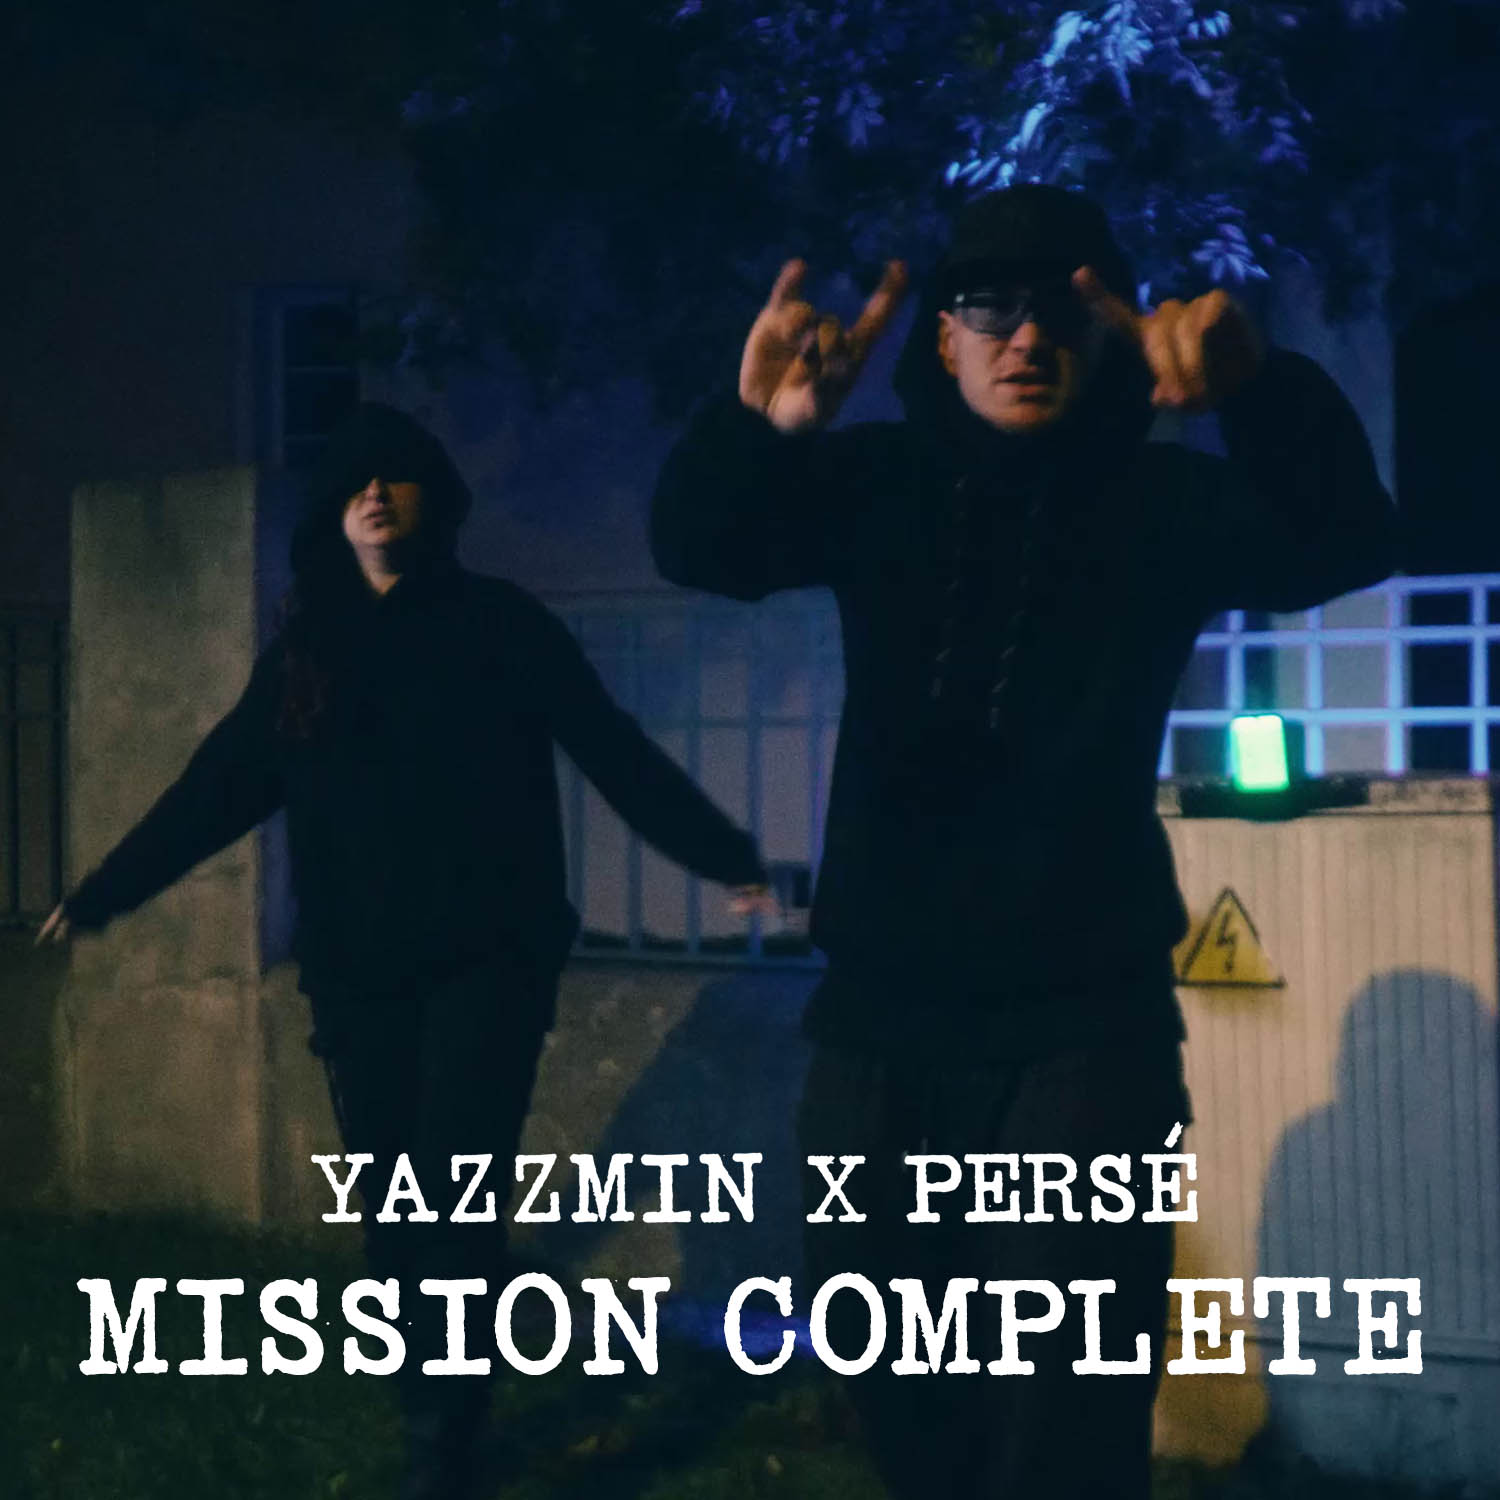 Upcoming: Yazzmin & Persé - Mission Complete [Video]